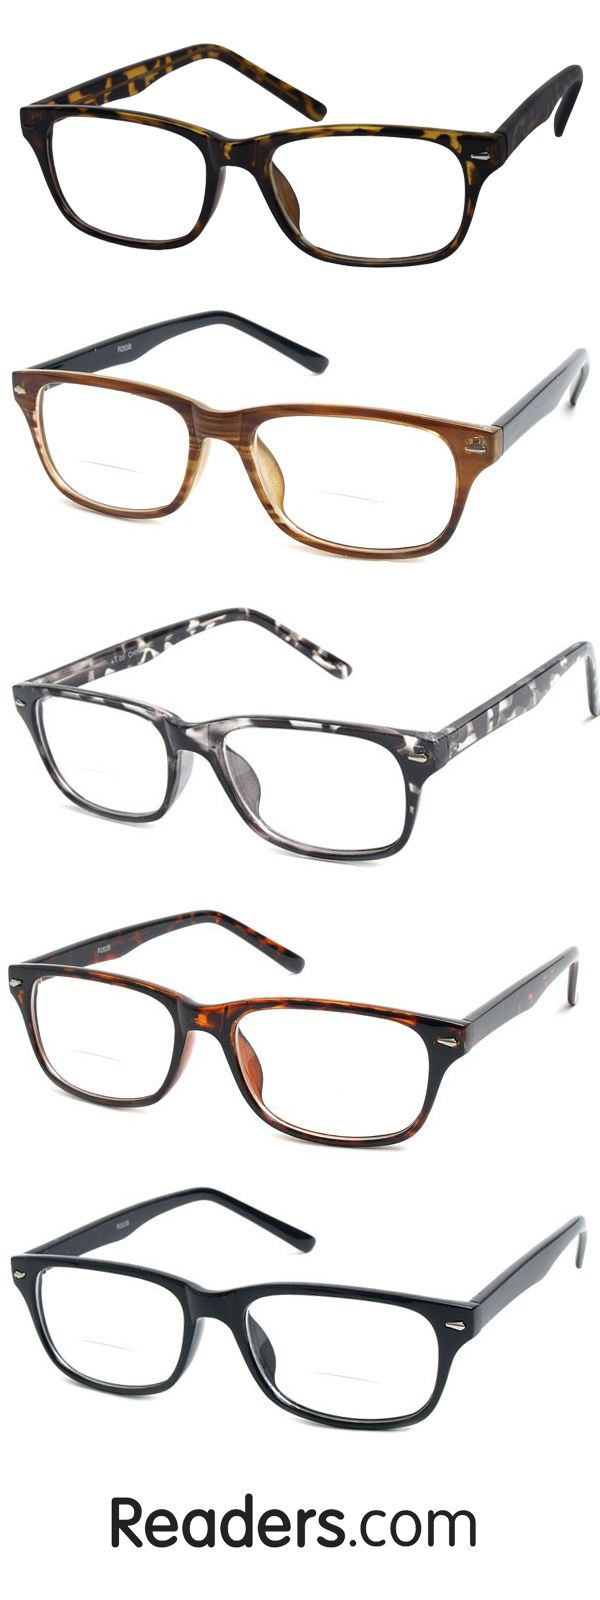 cb4f845ac010 The Williamsburg Bifocal is a timeless option for men and women and it  won't break the bank! Whether you're looking down to read or looking up to  catch a ...